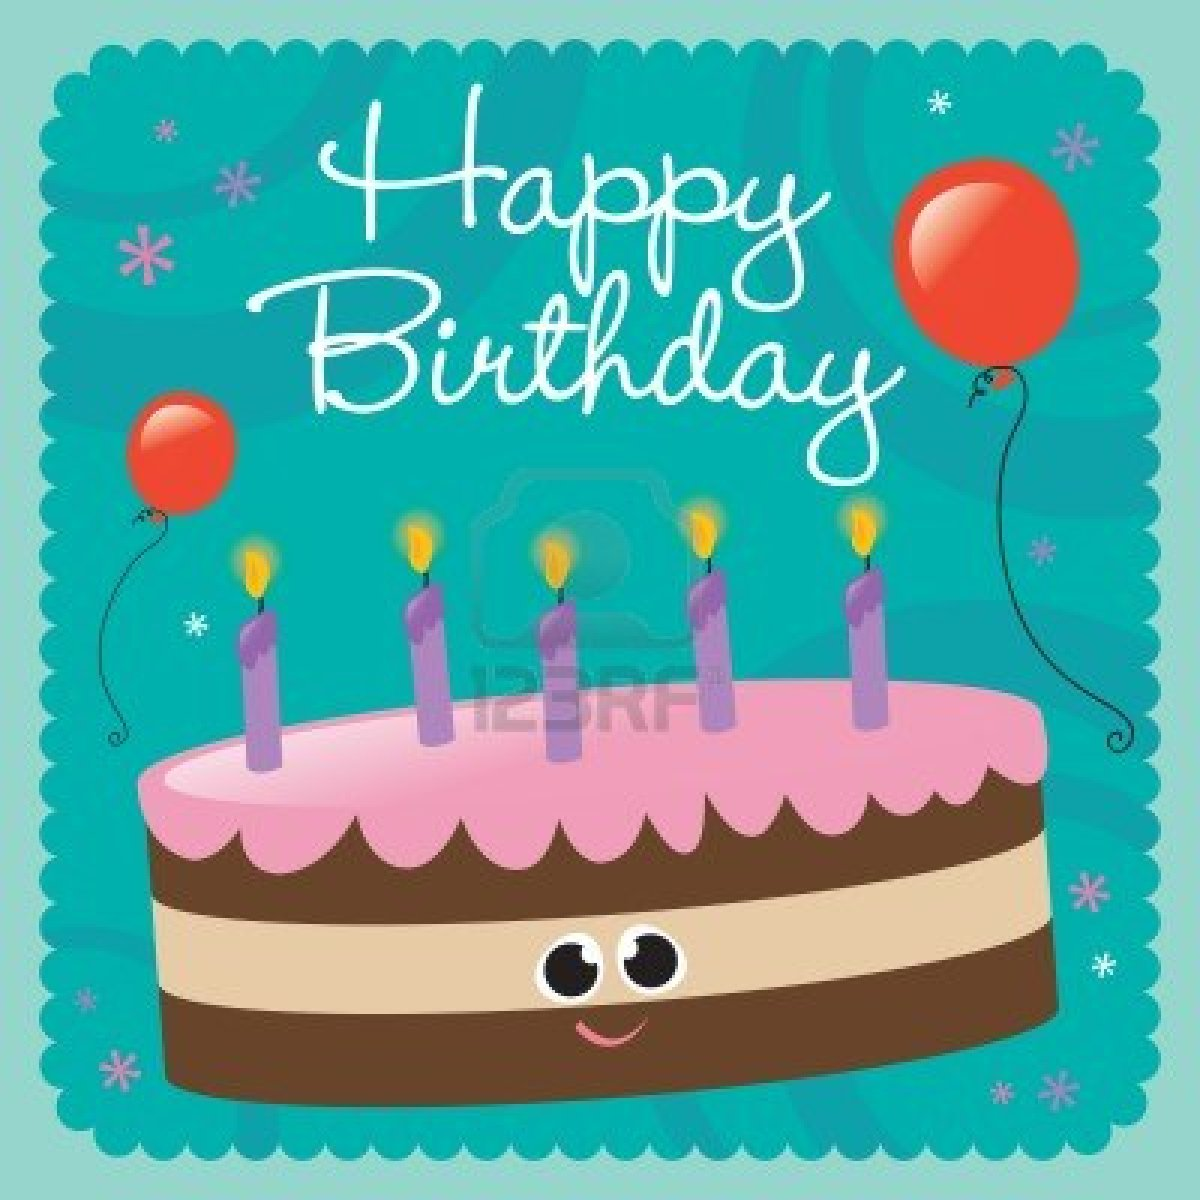 Happy birthday postcards pertamini happy birthday postcards bookmarktalkfo Choice Image